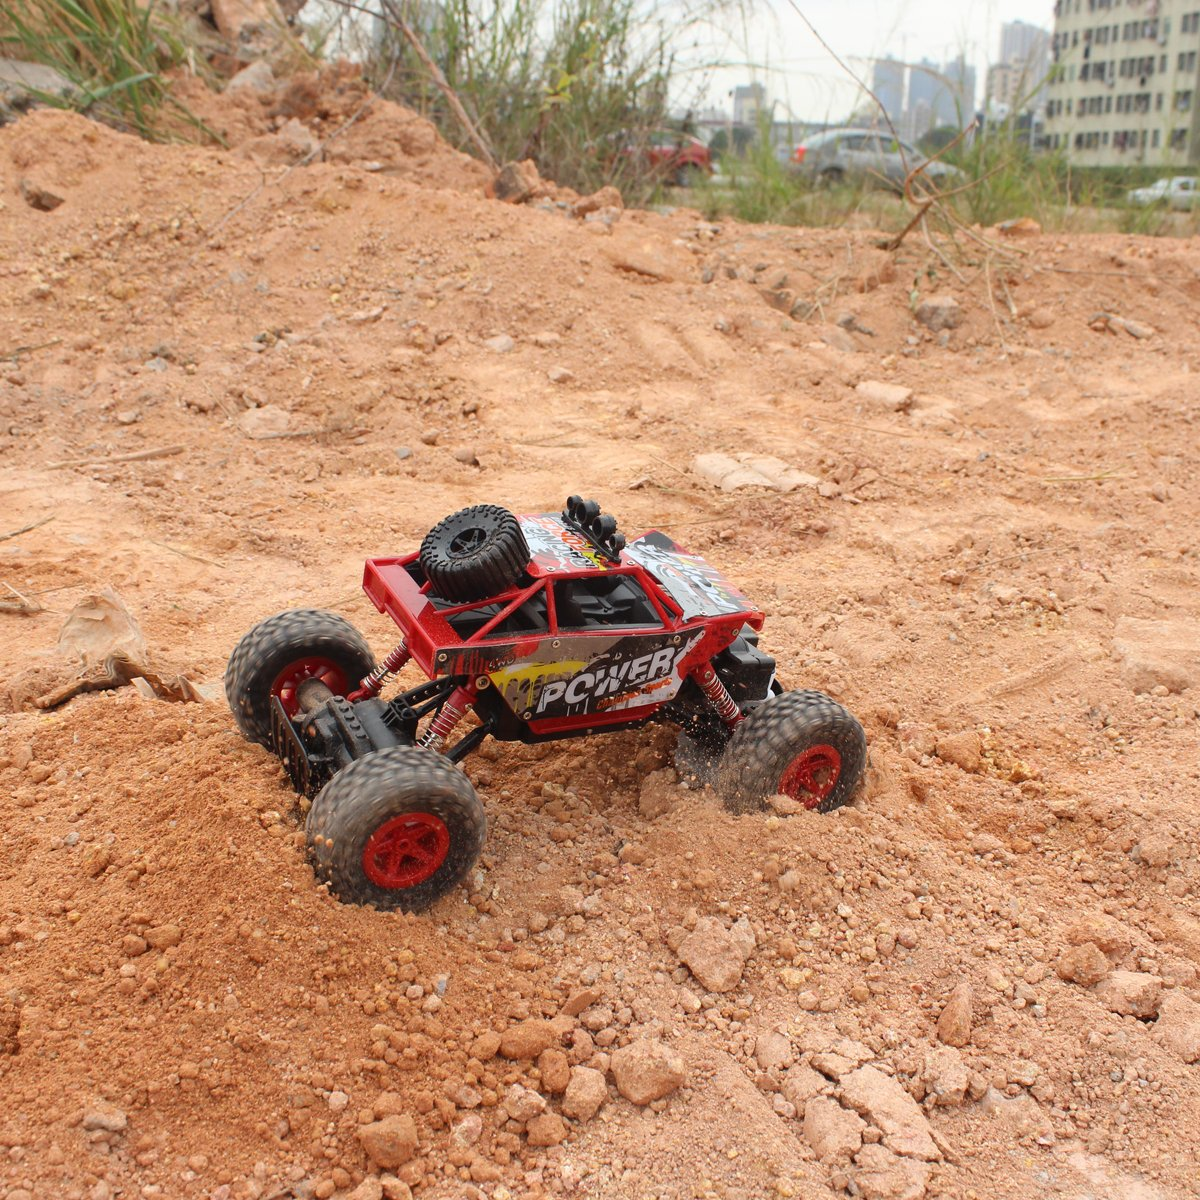 Fisca RC Car Remote Control Rock Crawler High Speed 4WD Off-Road Vehicle, 2.4Ghz 1:18 Dune Buggy Monster Truck Electric Hobby Fast Race Car with Rechargeable Battery Red